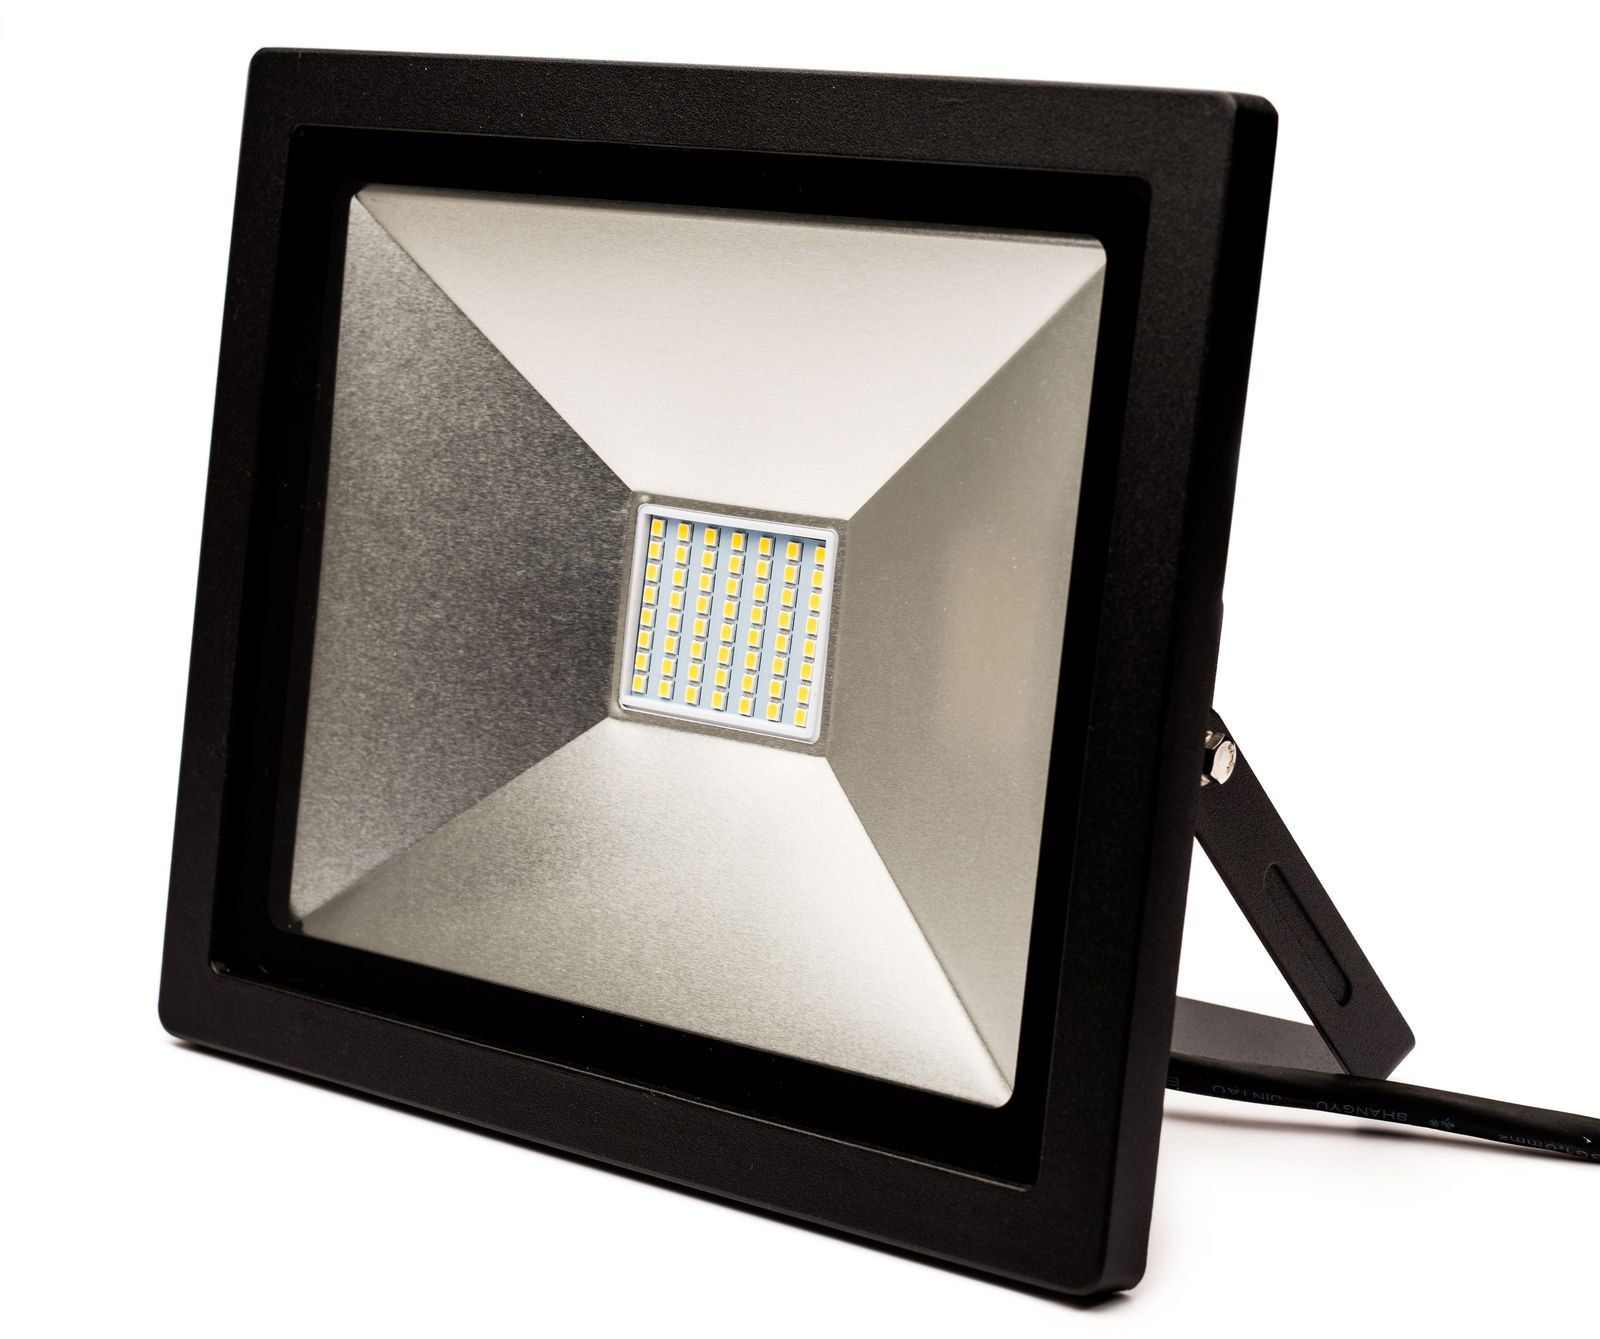 LED-valonheitin FTLight Slim Work, 50W, IP44, 3850lm, 4500K, musta